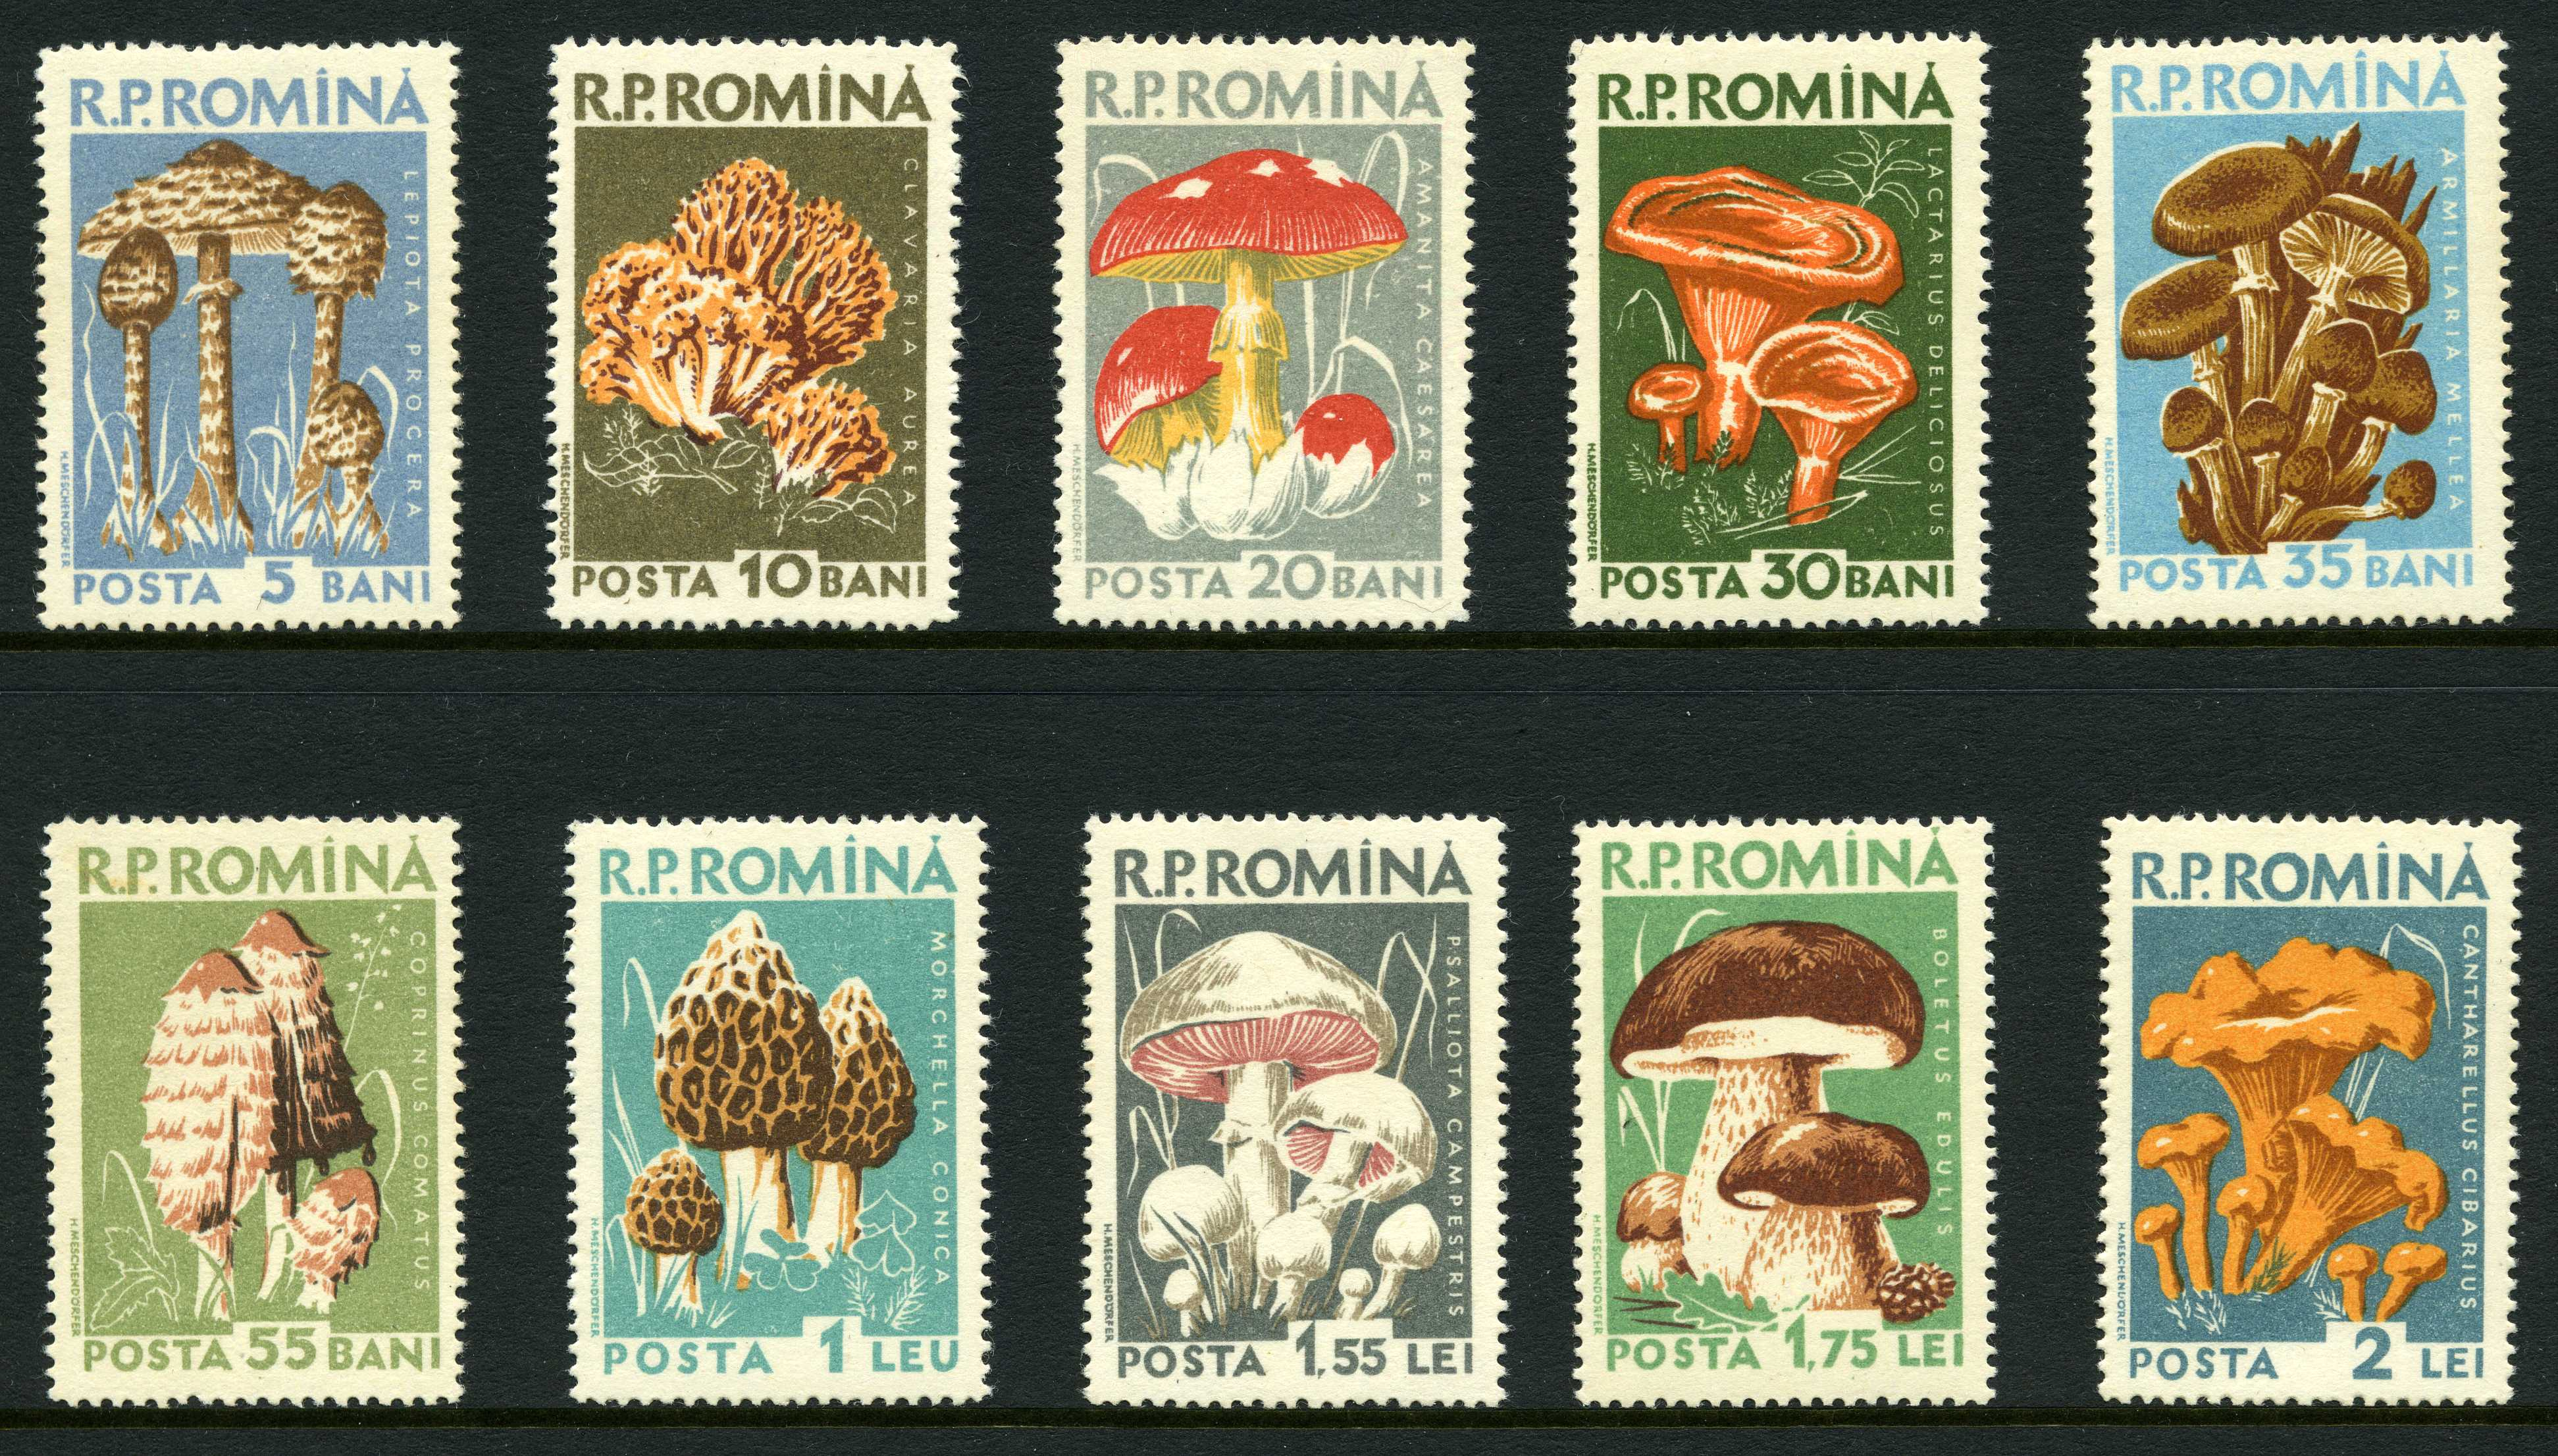 Fotos In Postergröße Fungi_on_stamps: Introduction And References